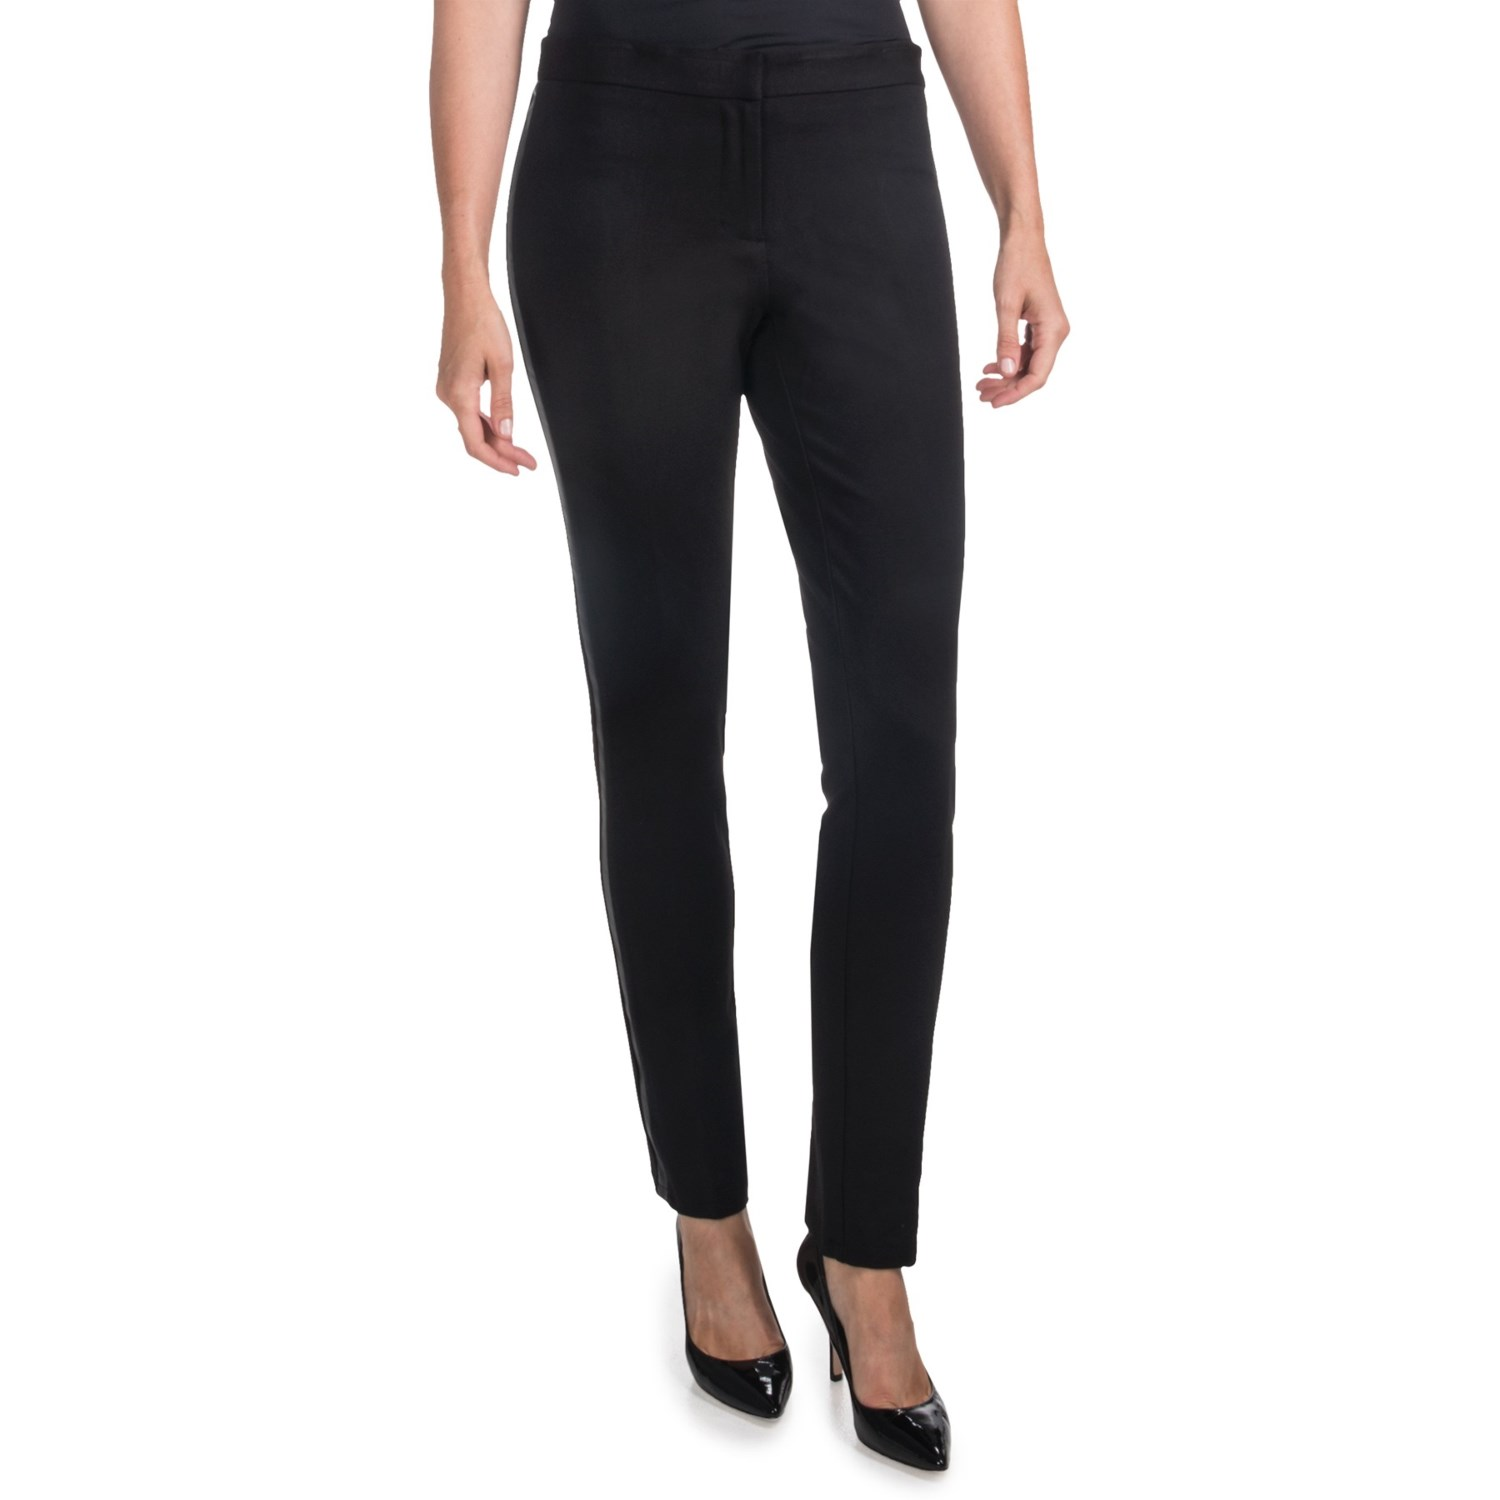 Popular Hit The Town In Sleek, Sexy Pants That Easily Make The Transition From Lunch Meeting To Happy Hour Smooth, Extreme Stretch Fabric Feels Luxurious Against Your Skin, While A Closetothebody Fit Streamlines Your Silhouette